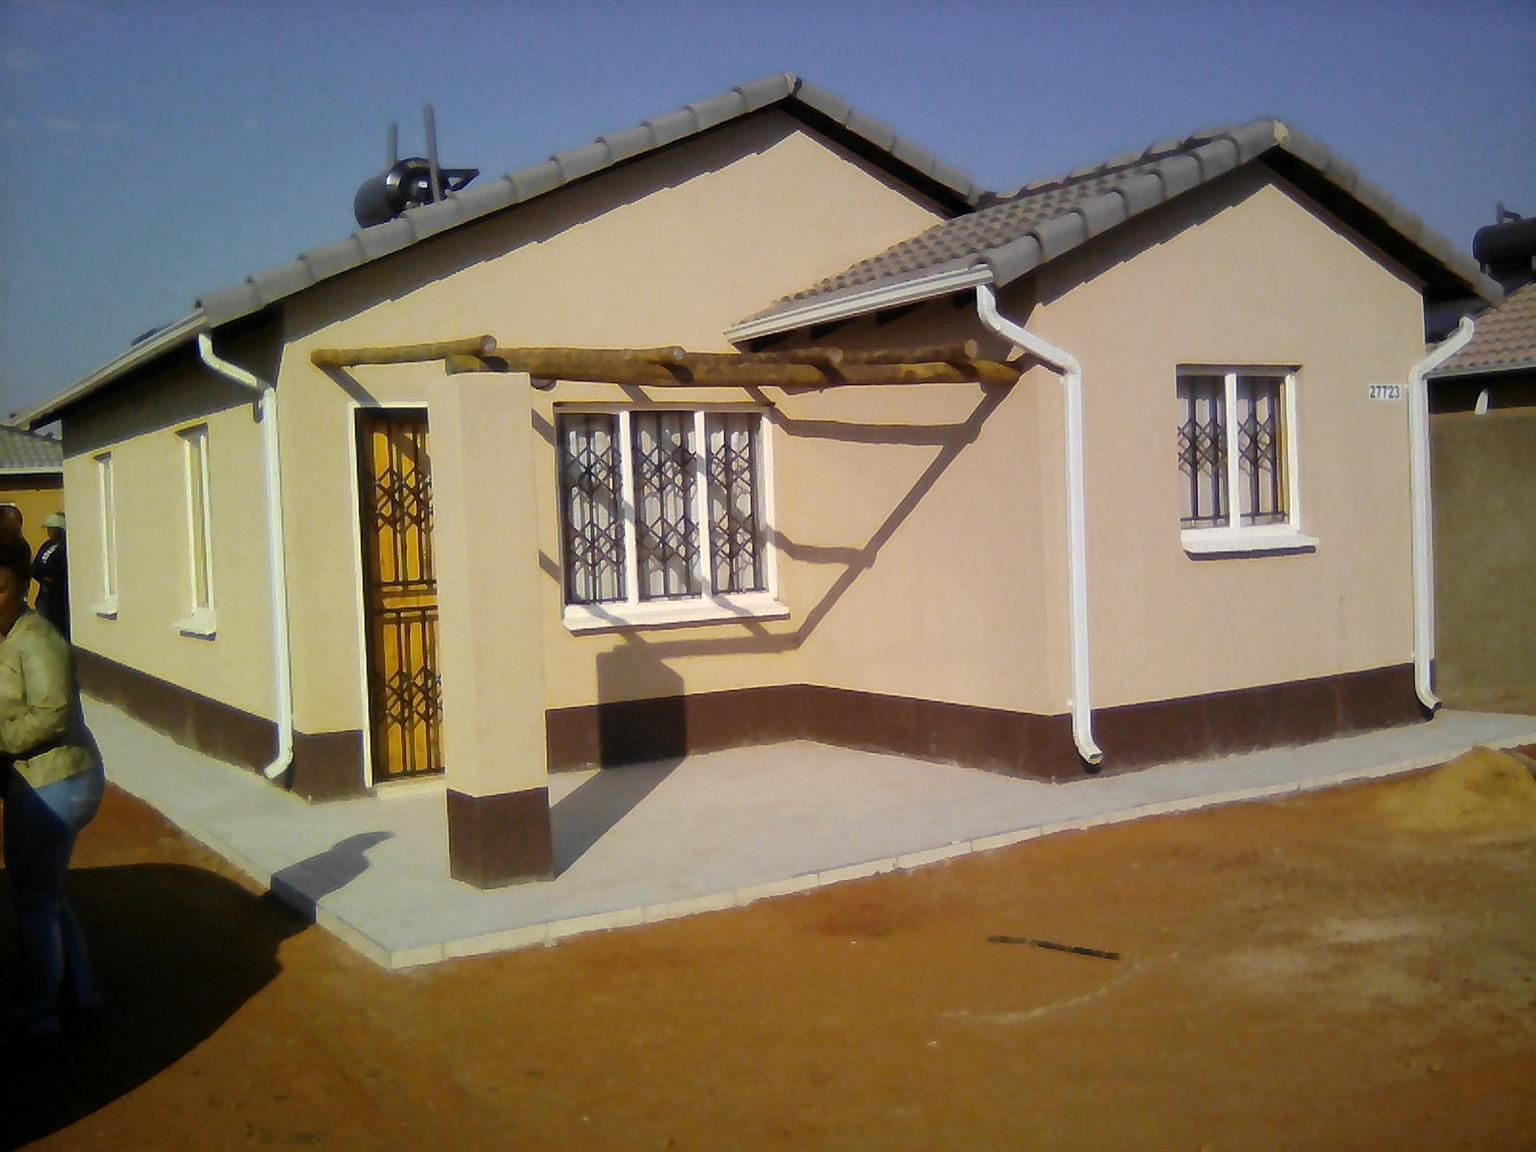 Two bedroom house with ensuite to rent in Protea Glen Ext 22, R3800 with Built-in-cupboards and huge corner yard.